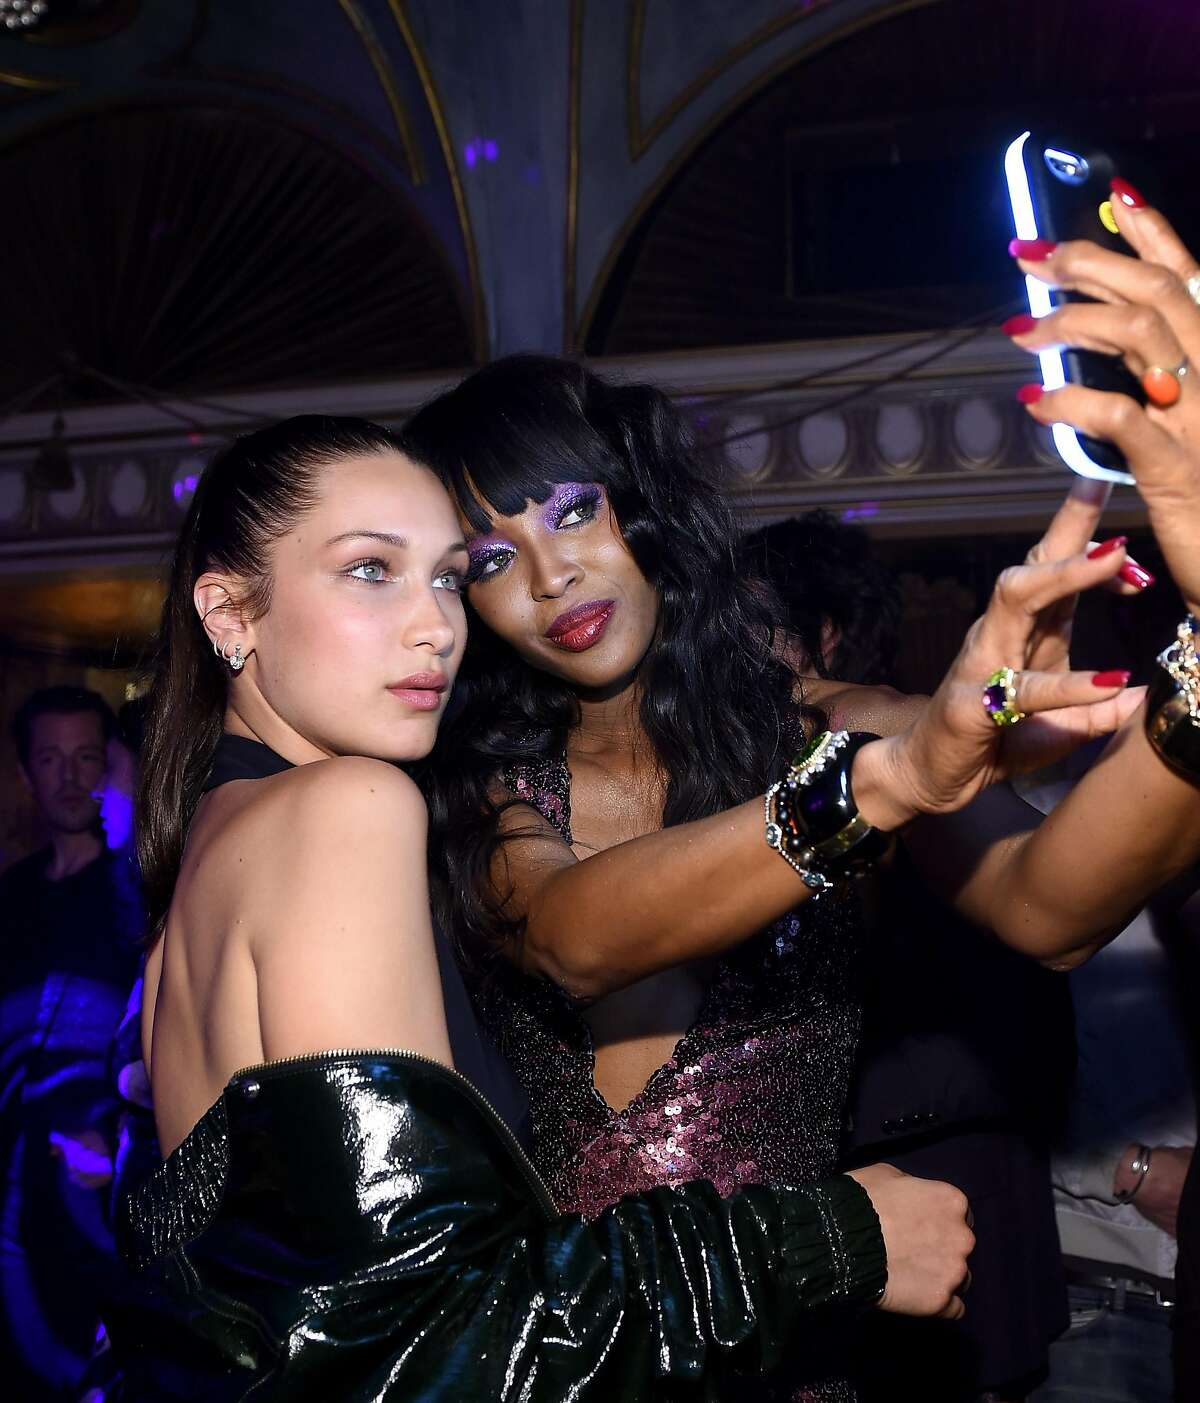 NEW YORK, NEW YORK - APRIL 07: Bella Hadid (L) and Naomi Campbell take a selfie as Marc Jacobs & Benedikt Taschen celebrate NAOMI at The Diamond Horseshoe on April 7, 2016 in New York City. (Photo by Dimitrios Kambouris/Getty Images for Marc Jacobs International, LLC)